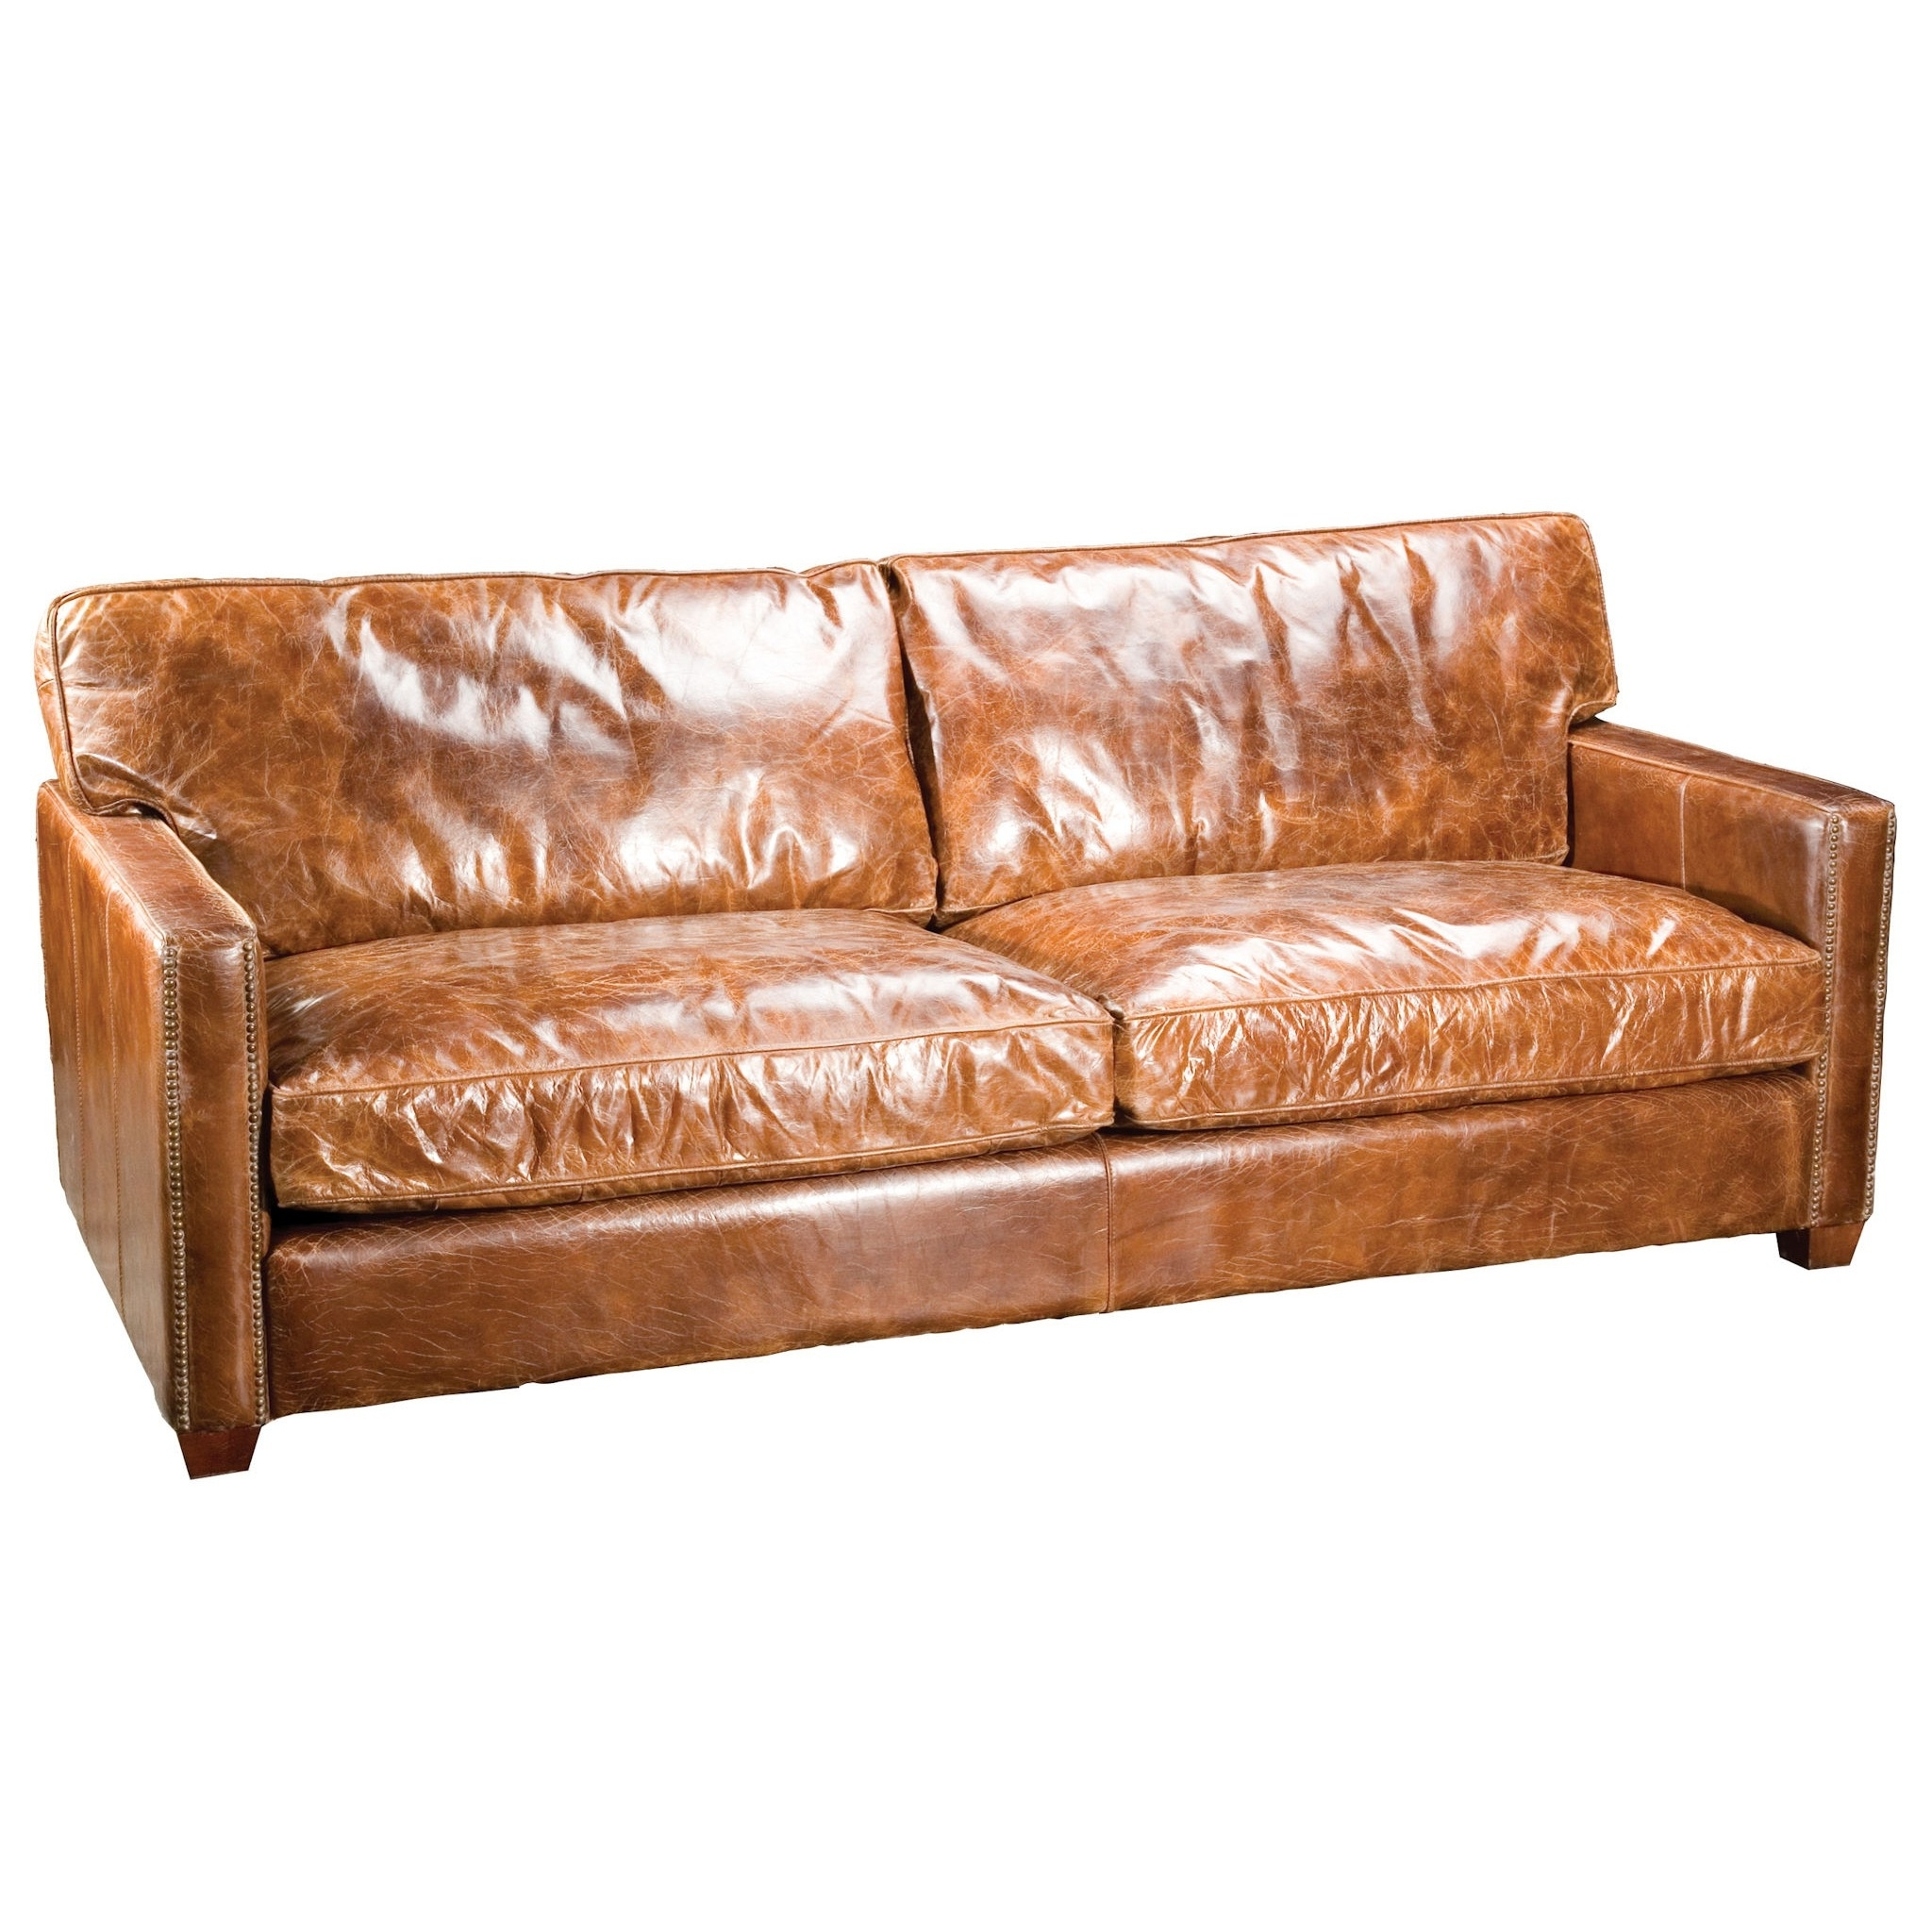 Popular Full Grain Leather Sofas For Espresso Leather Top Grain Amusing Full Grain Leather Sofa – Home (View 7 of 15)